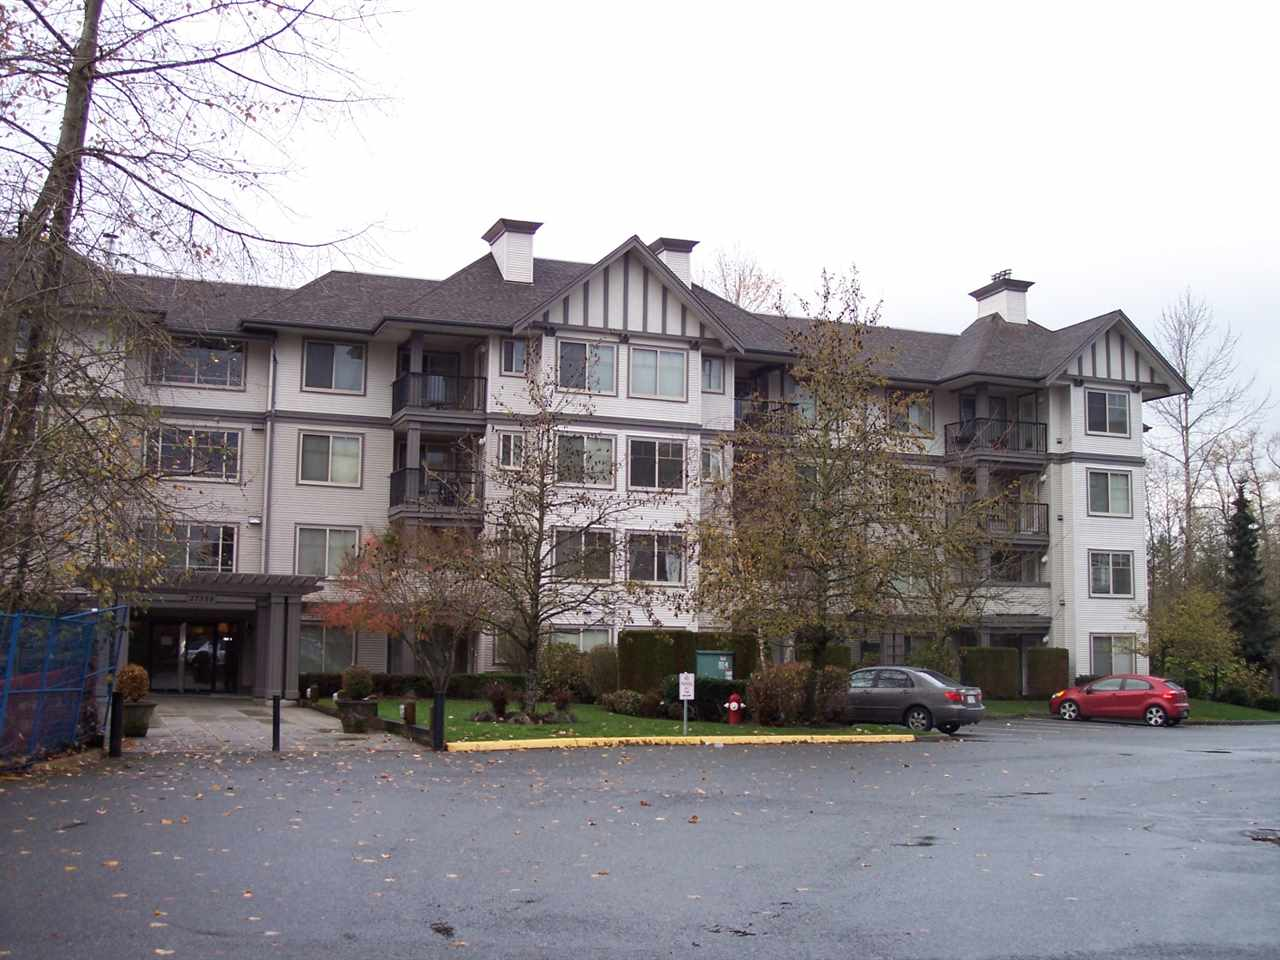 "Main Photo: 136 27358 32 Avenue in Langley: Aldergrove Langley Condo for sale in ""Willowcreek Estates 3"" : MLS® # R2123878"